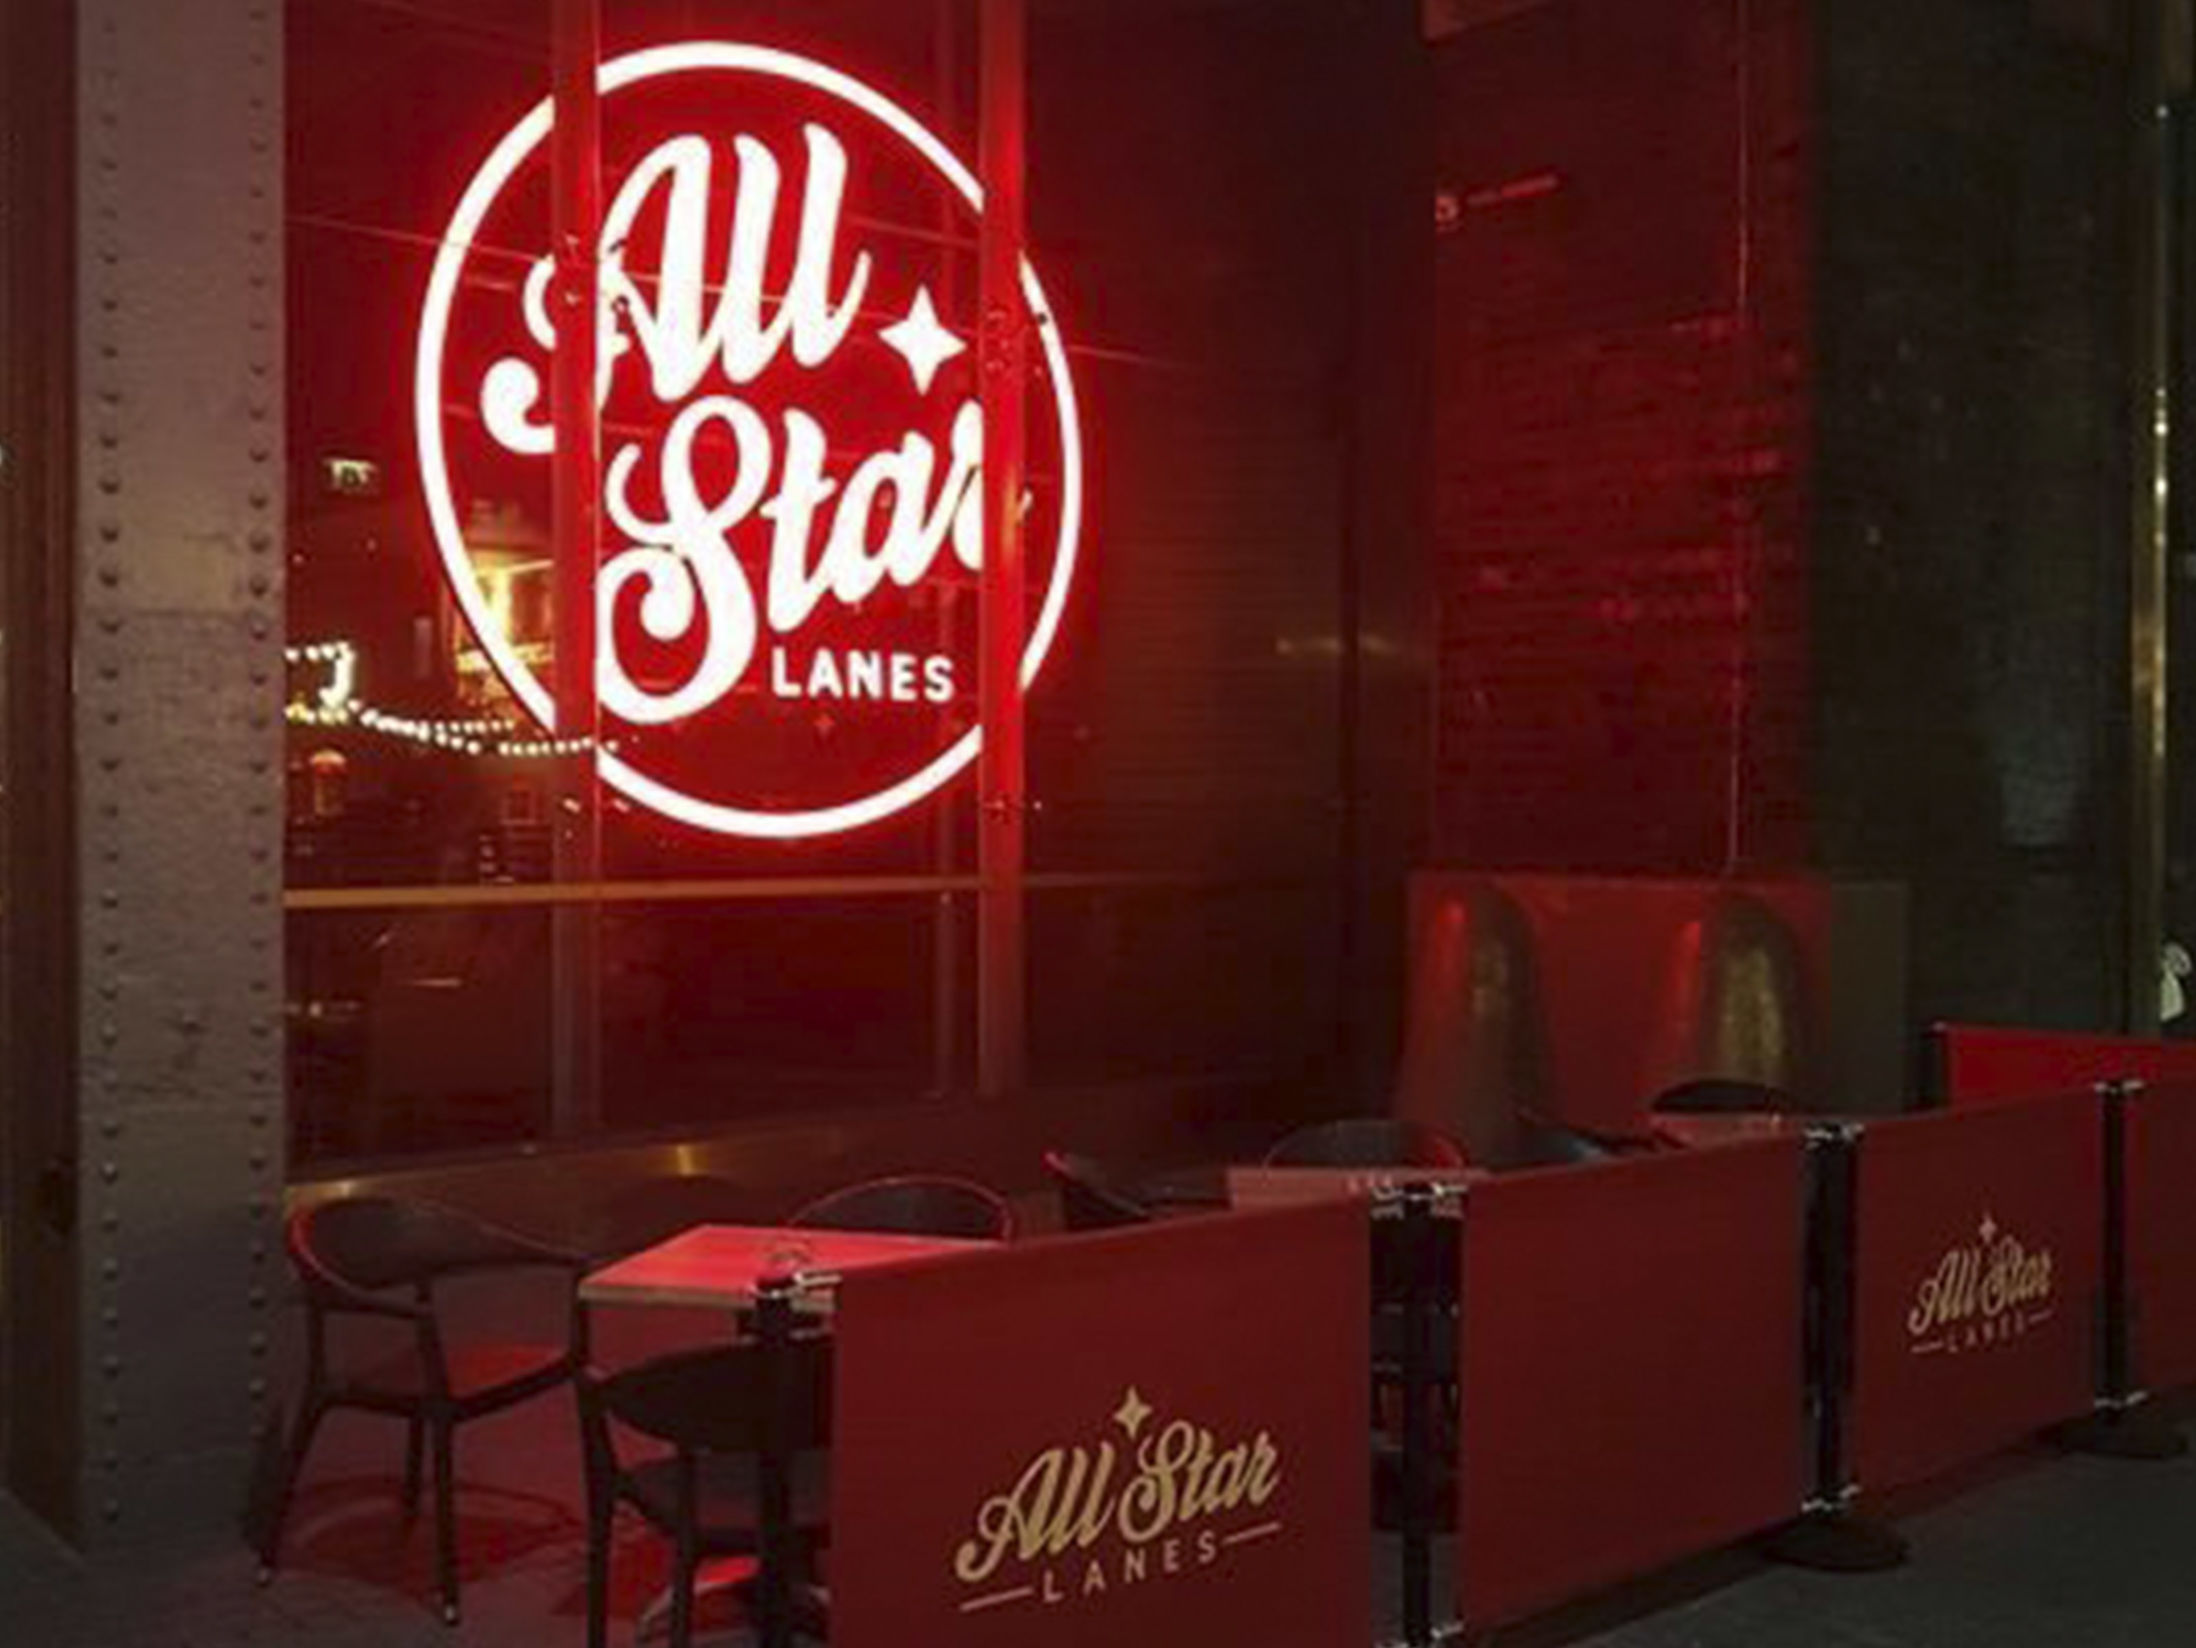 Best Bars in Manchester - All Star Lanes